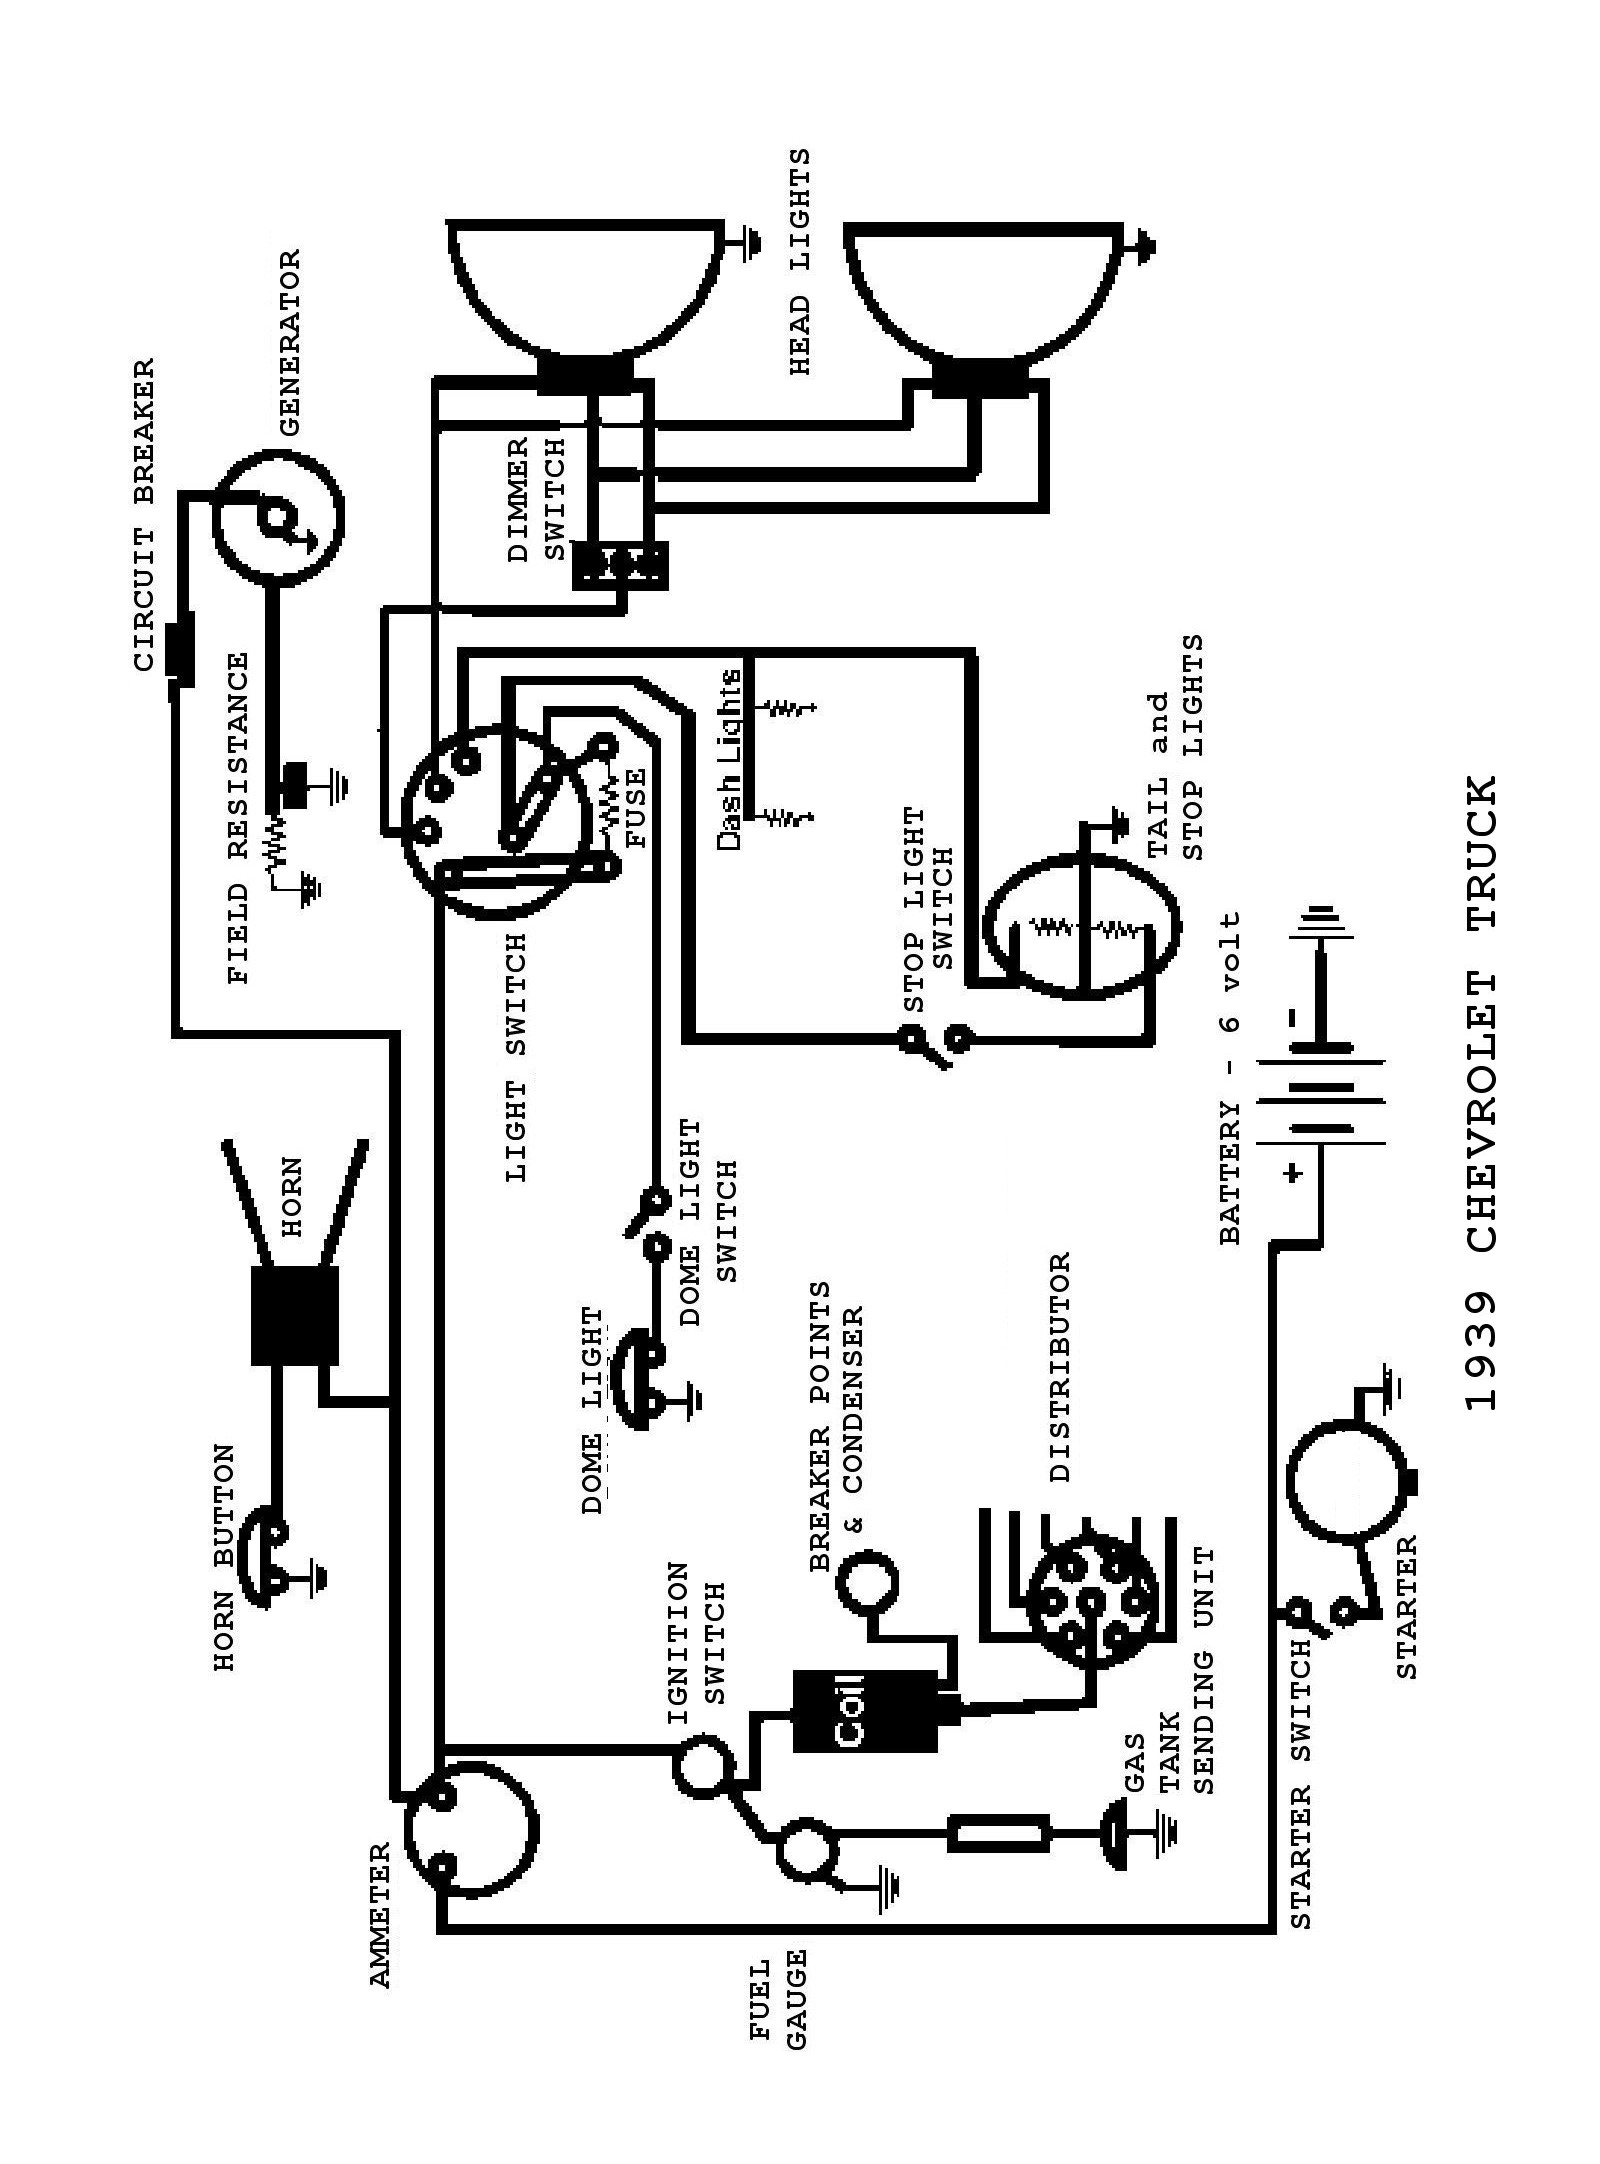 hight resolution of chevy wiring diagrams international 4700 starter wiring diagram 1949 international truck wiring diagram